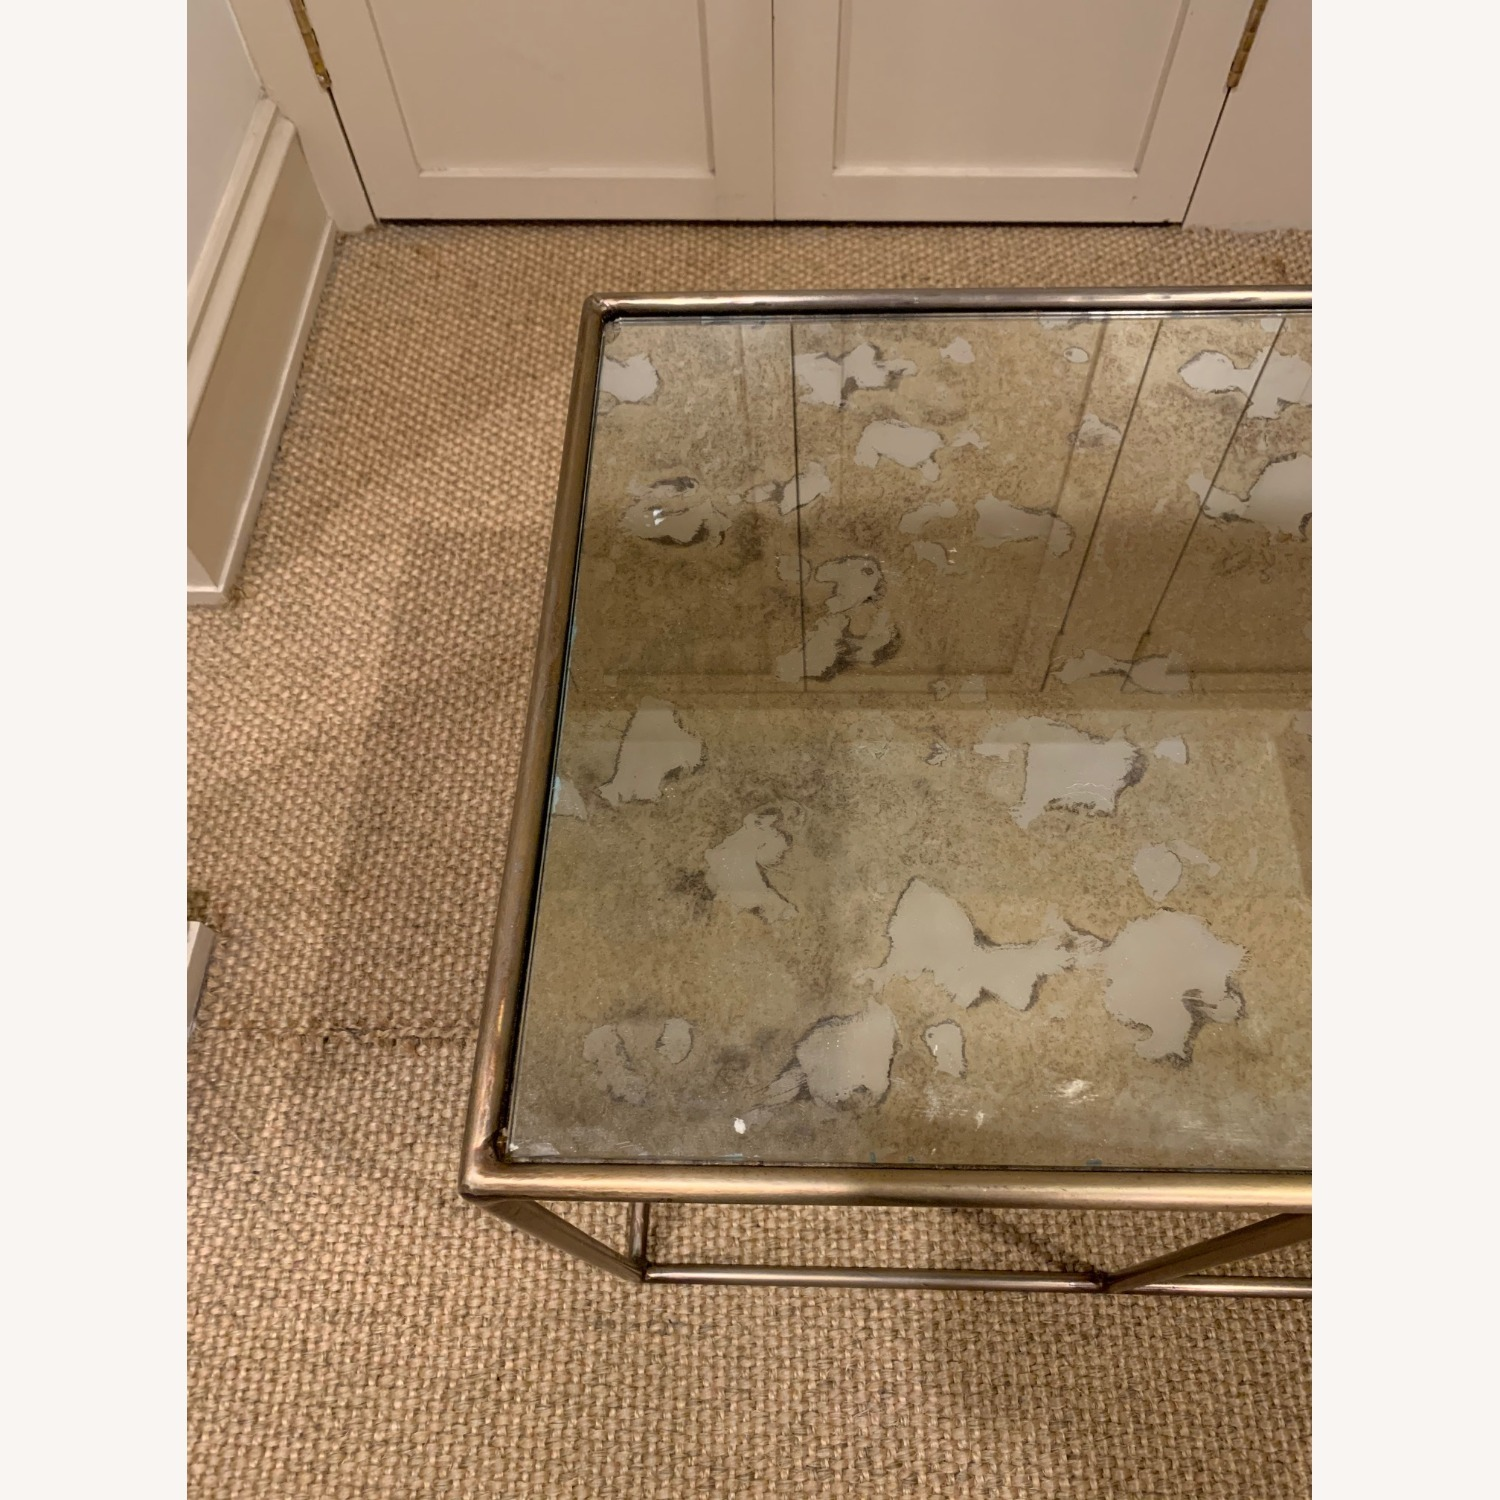 Arteriors Othello Coffee Table - image-9